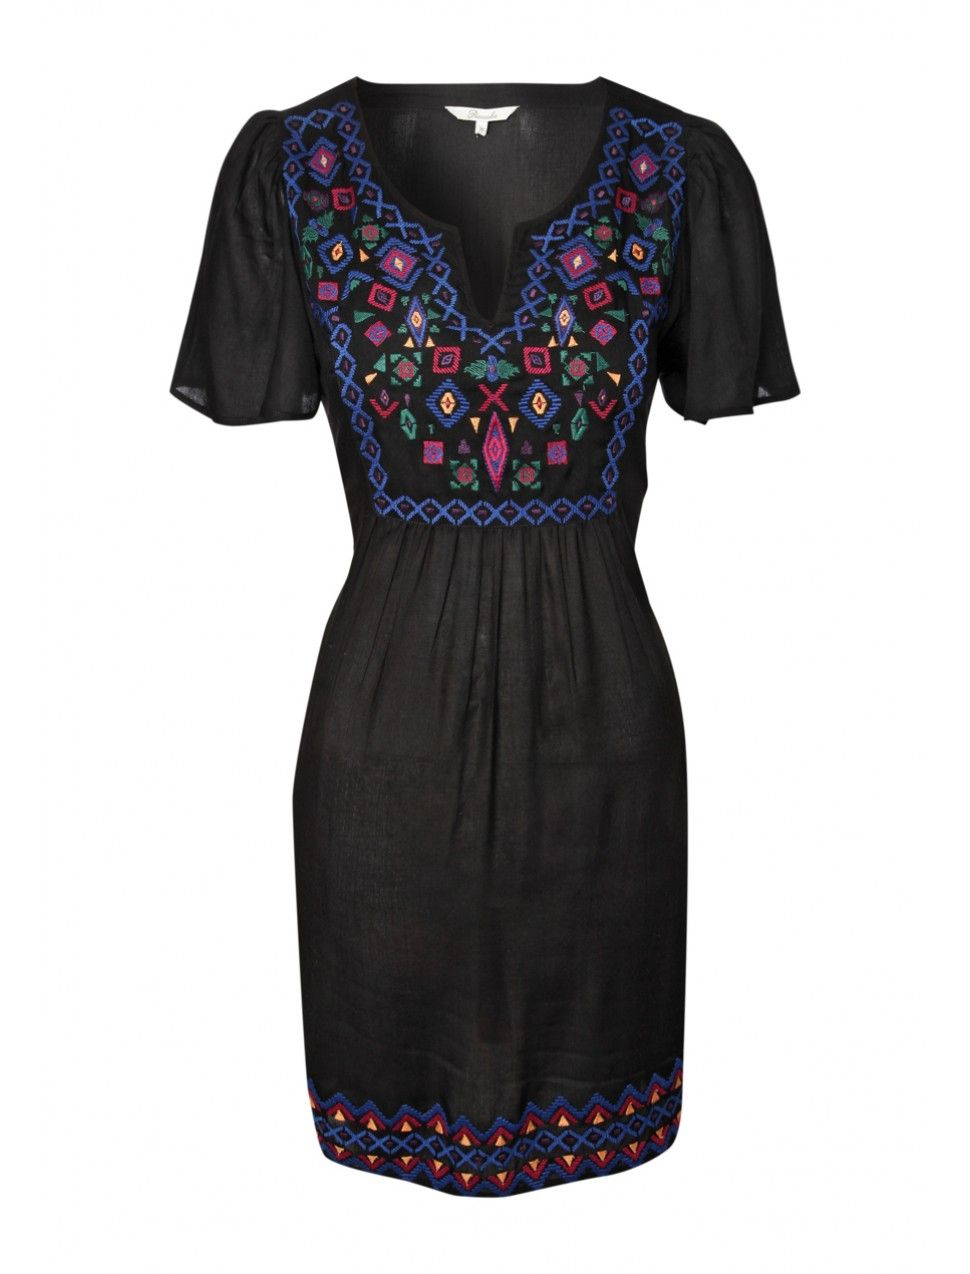 Womens embroidery detail tunic for a pretty smartcasual